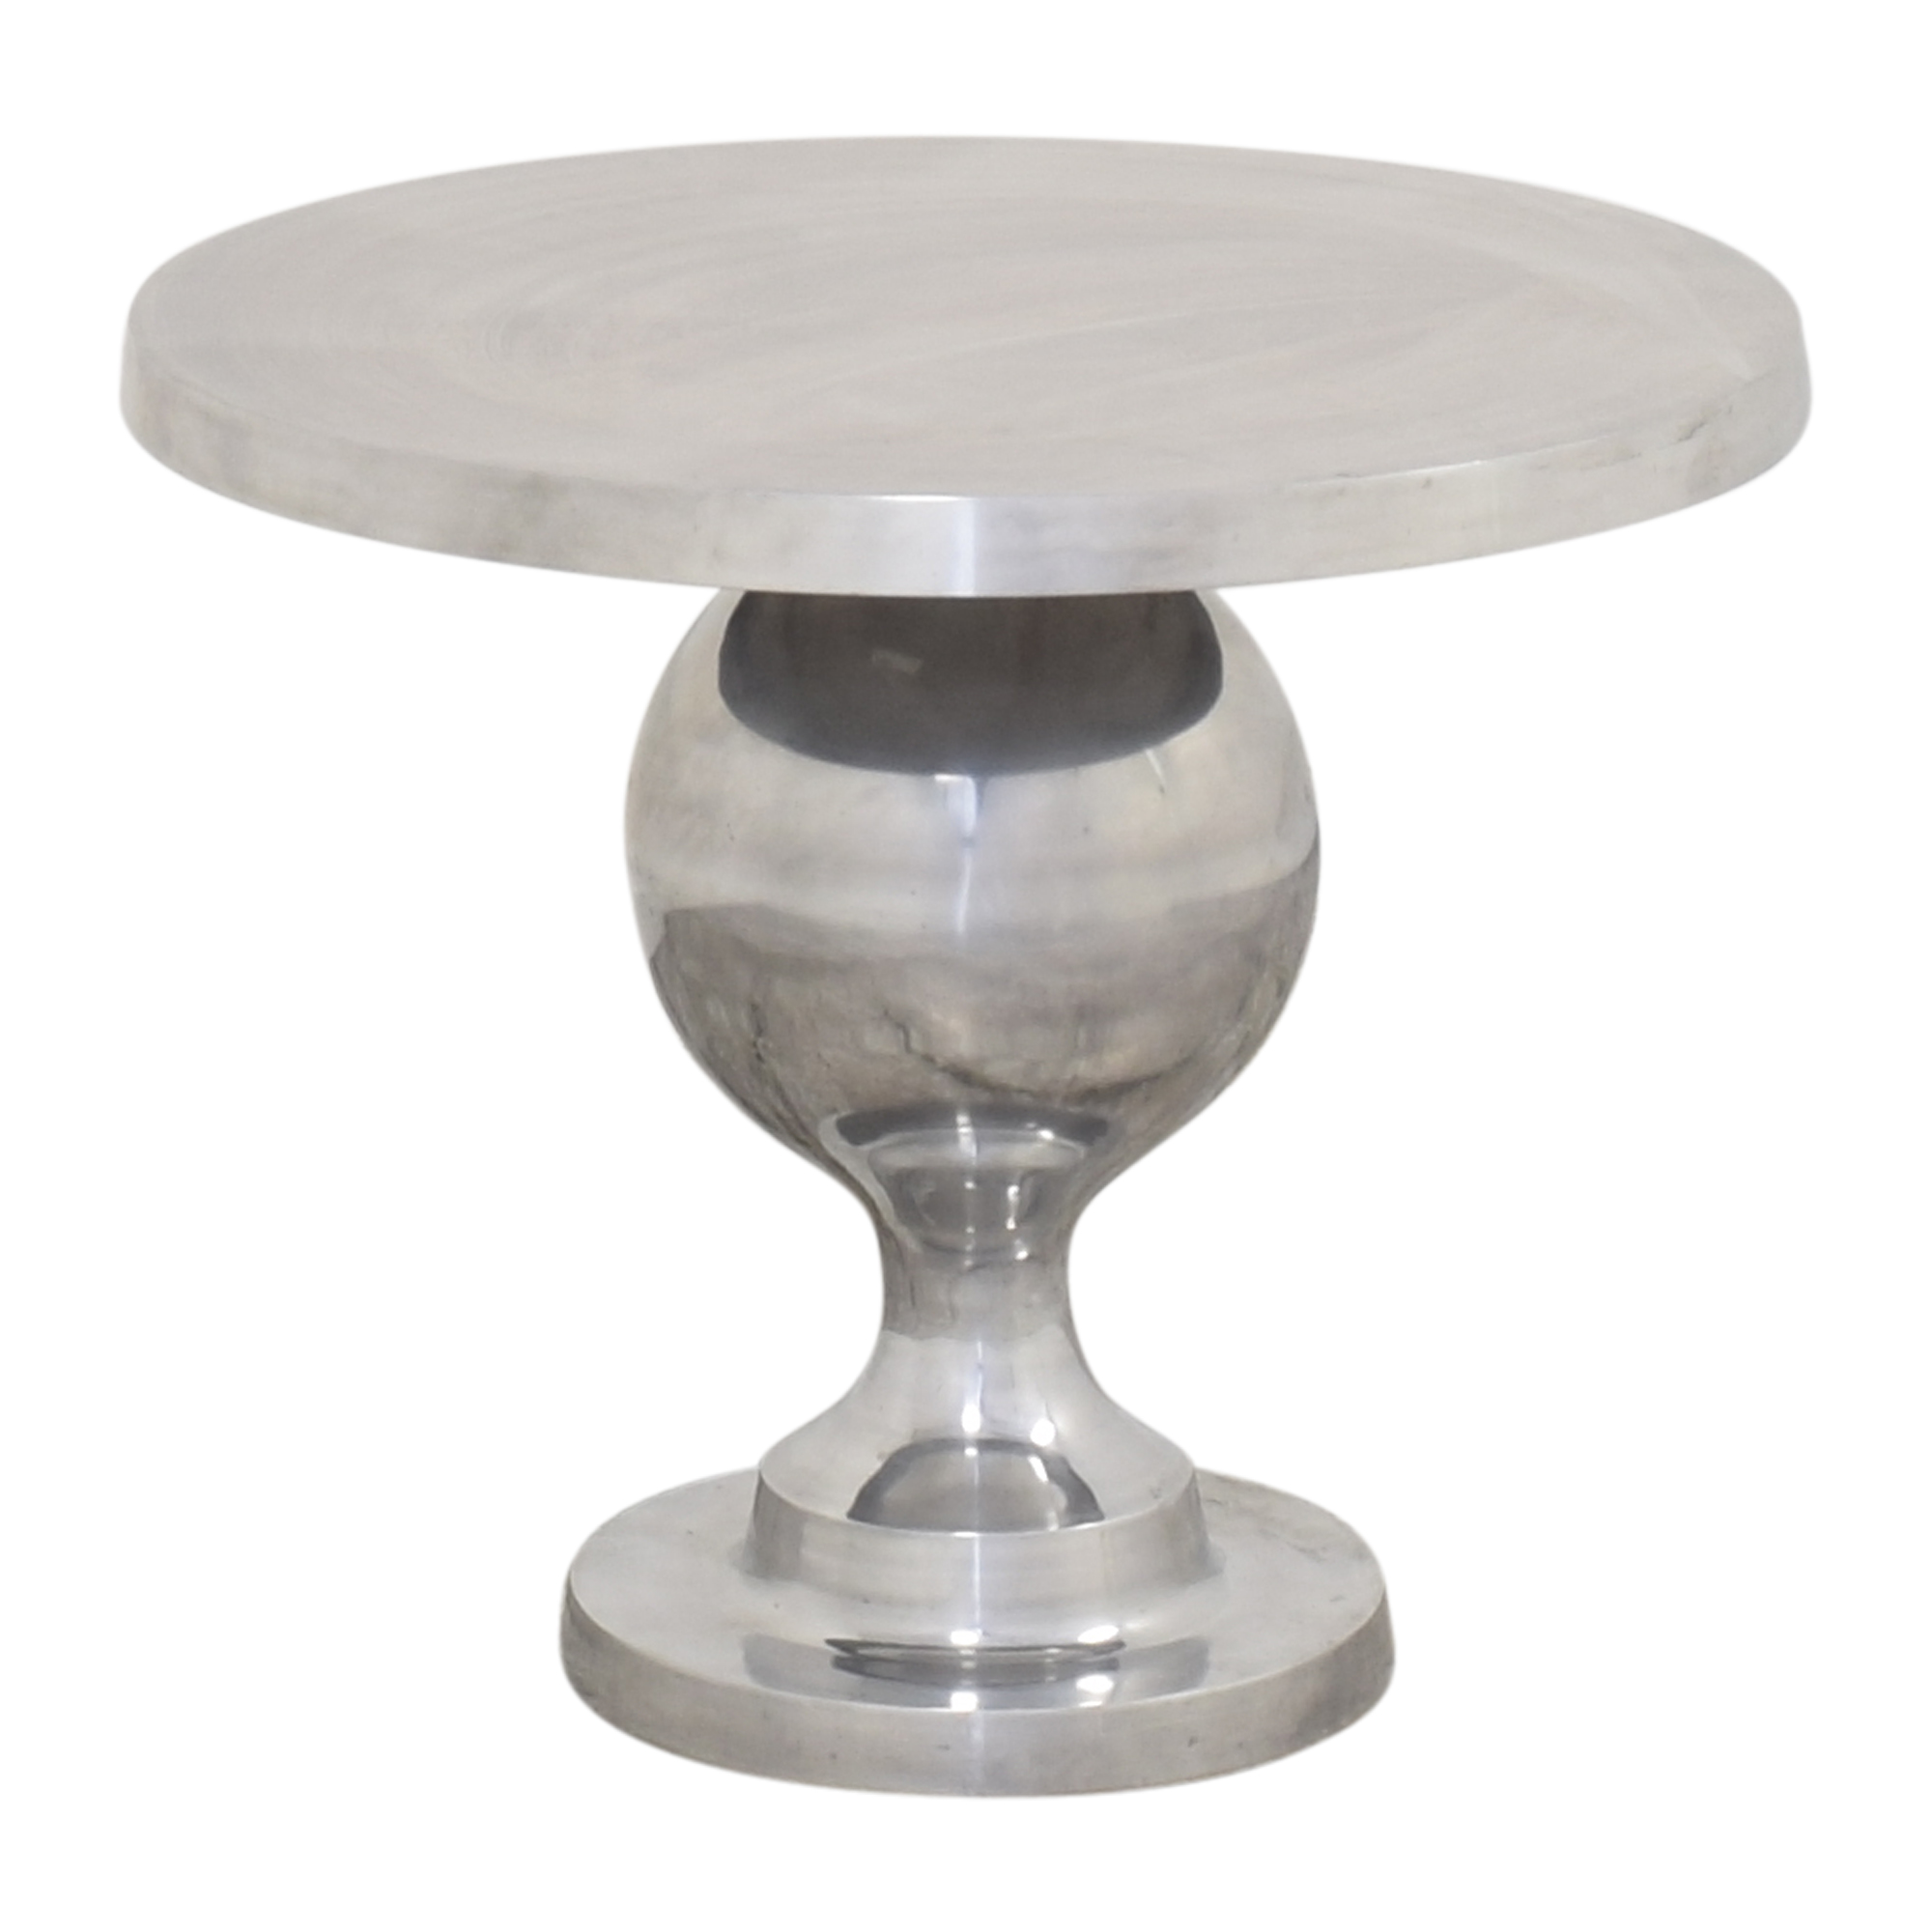 buy Zin Home Miami Round Base Table Zin Home Dinner Tables